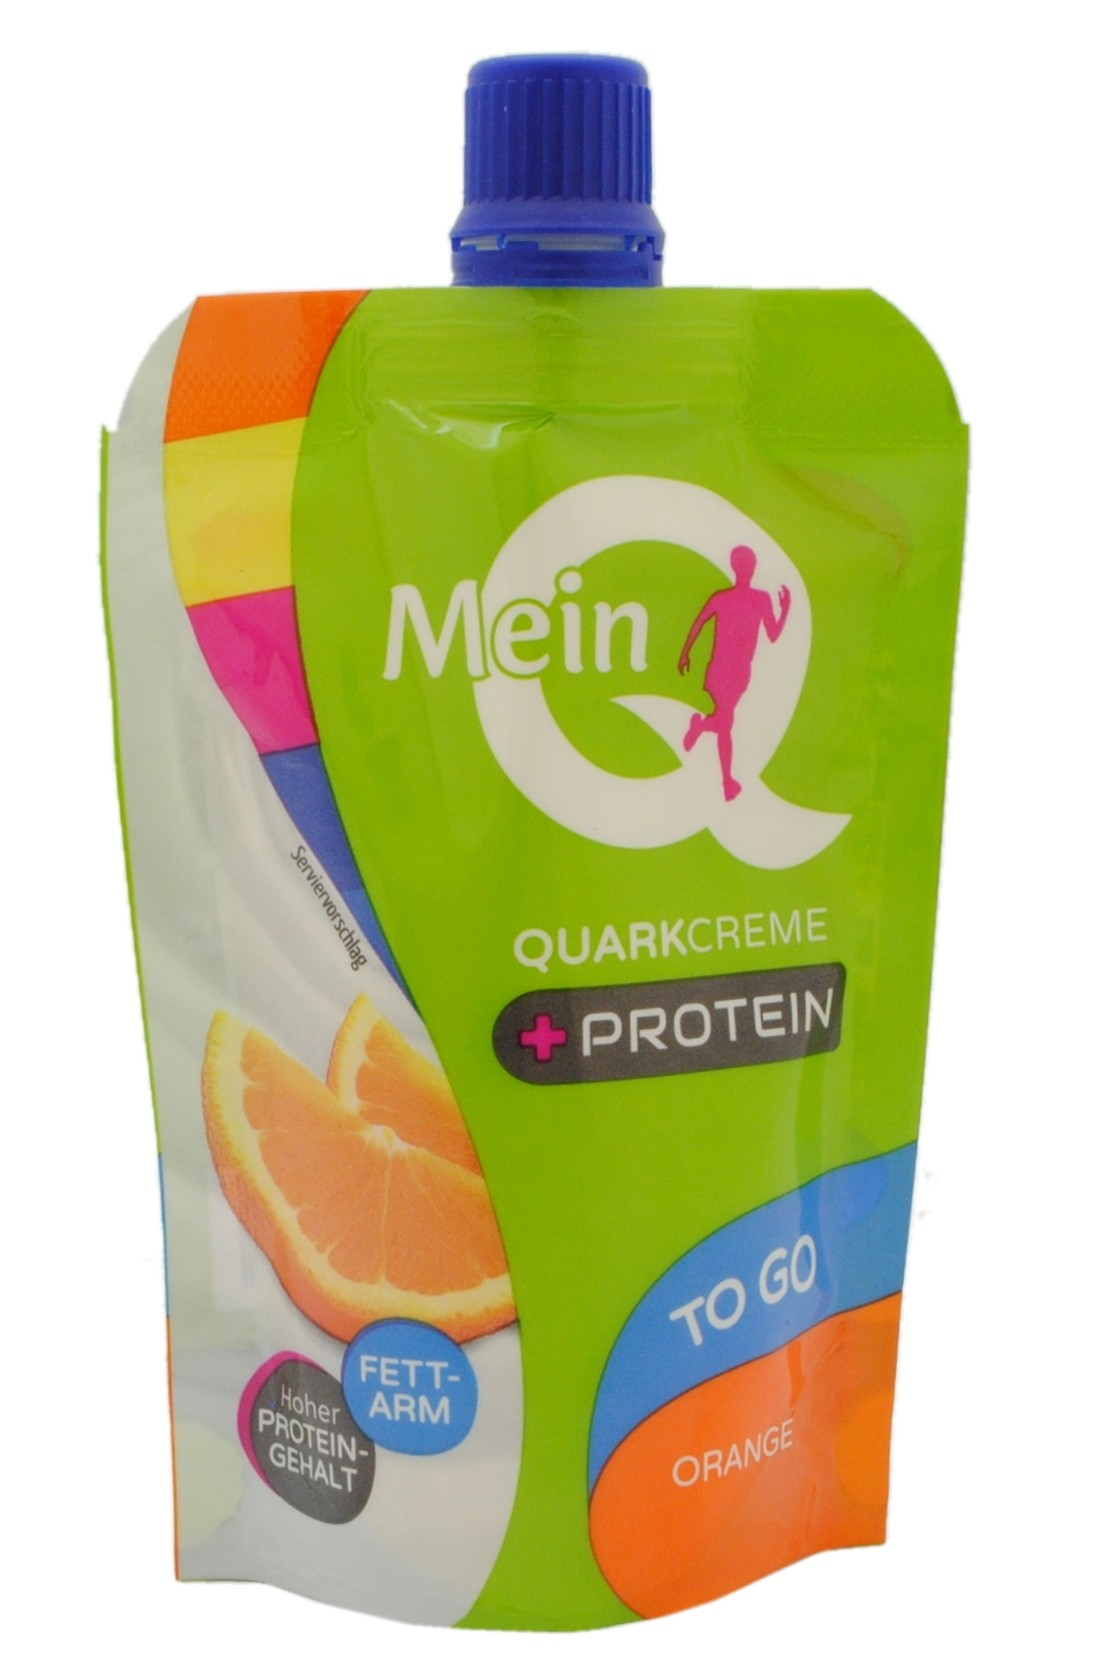 Orange Flavoured Quark Creme with Protein